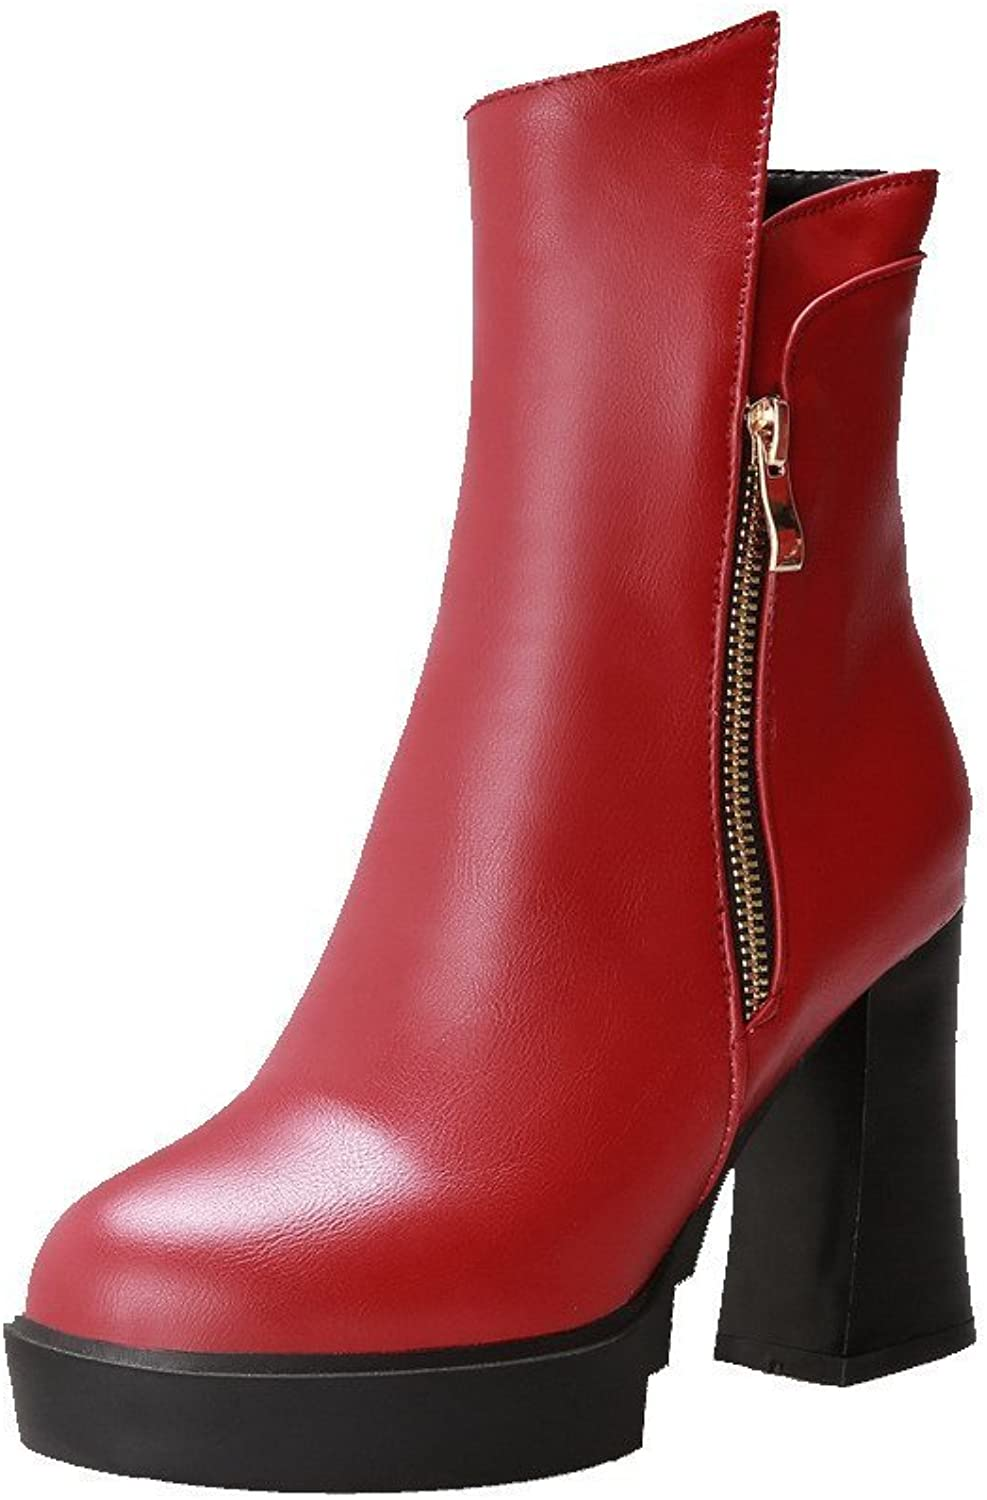 Laolaooo shoes Women's PU High-Heels Closed Round Toe Solid Zipper Boots Red9.5 B(M) US